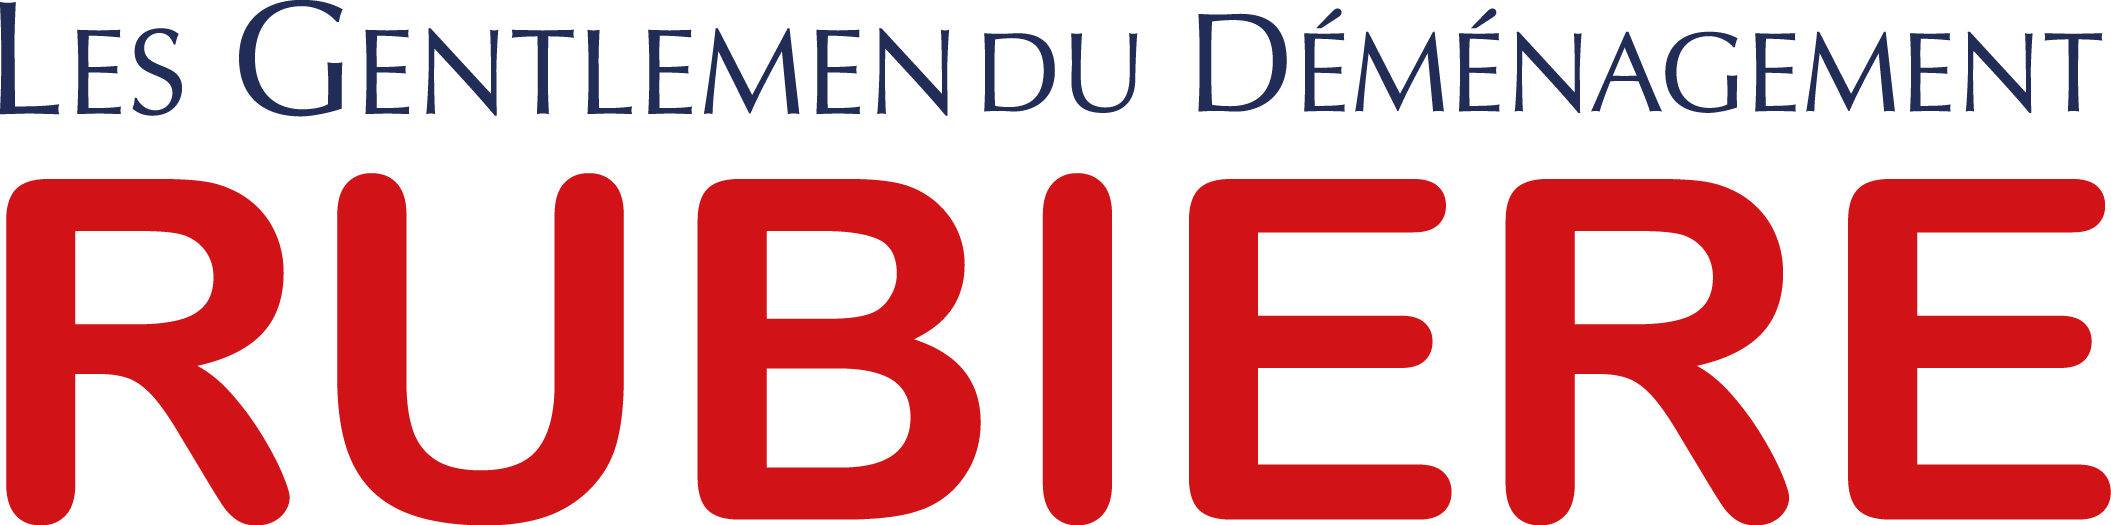 LOGO RUBIERE DEMENAGEMENT